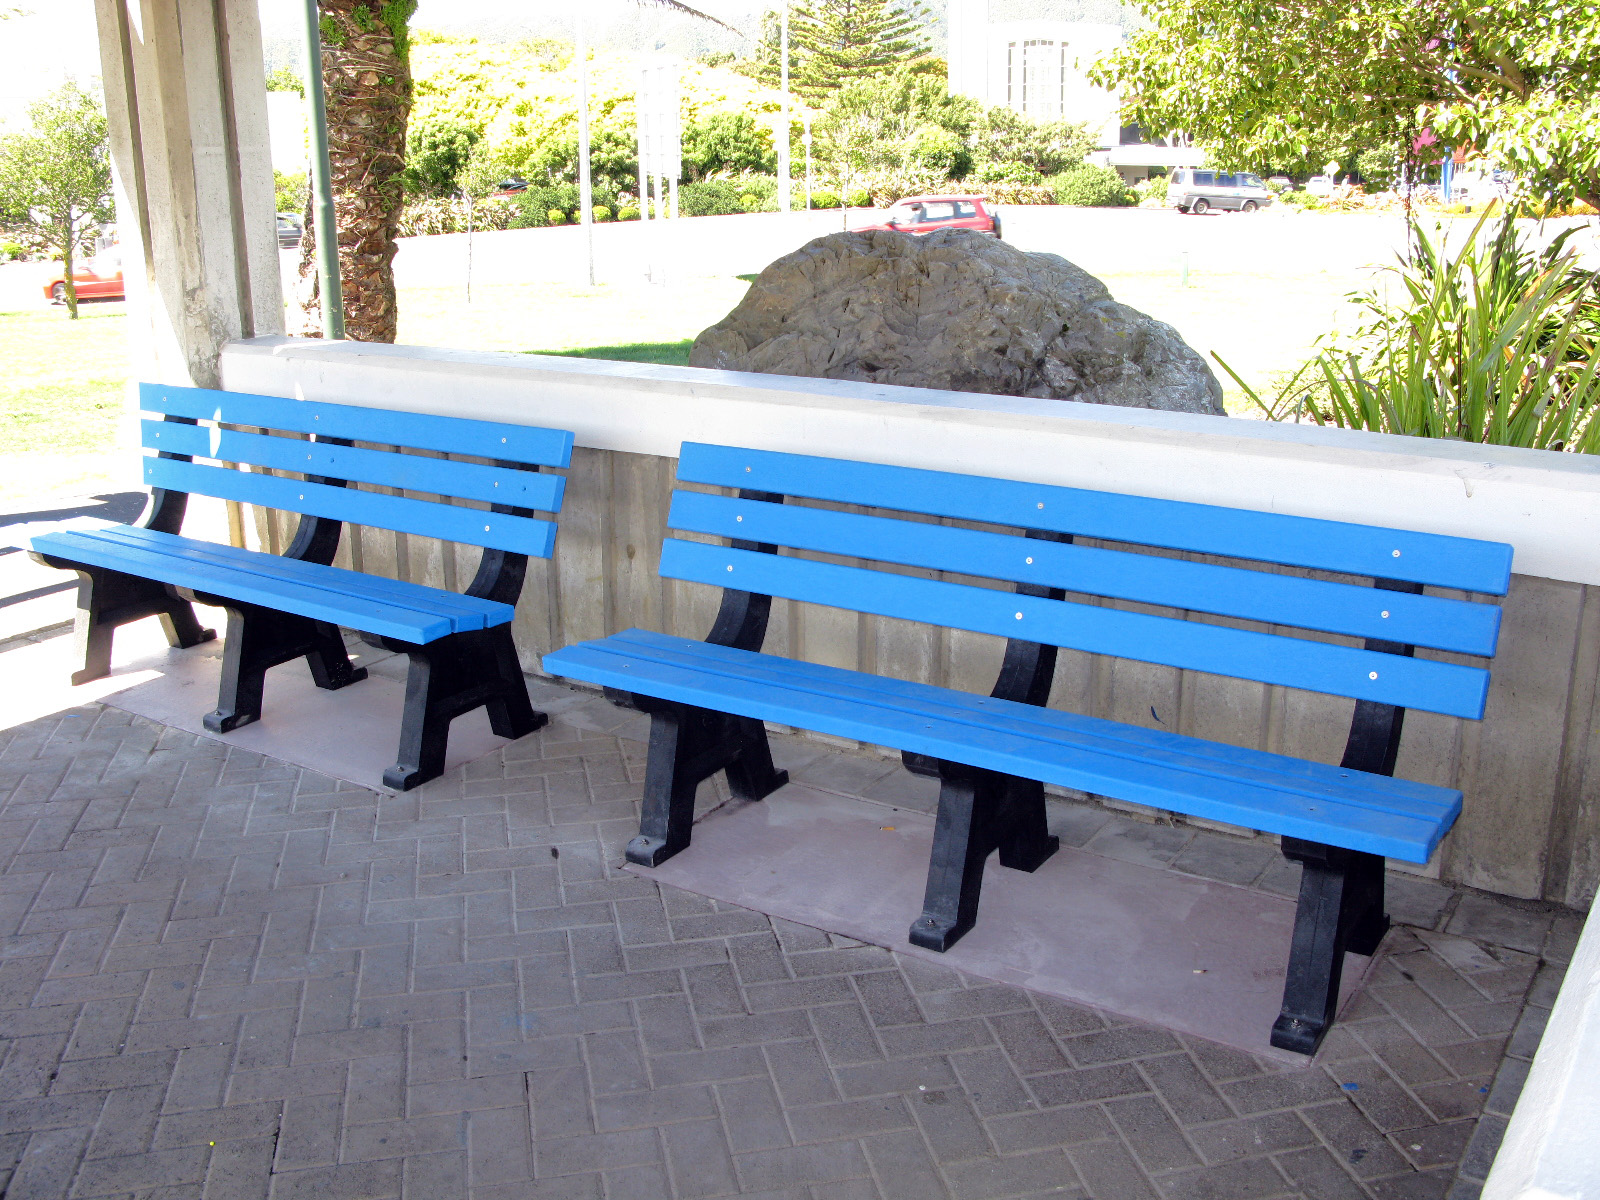 Garden Bench Australia Furniture Replas Recycled Plastic Product For Outdoor Use